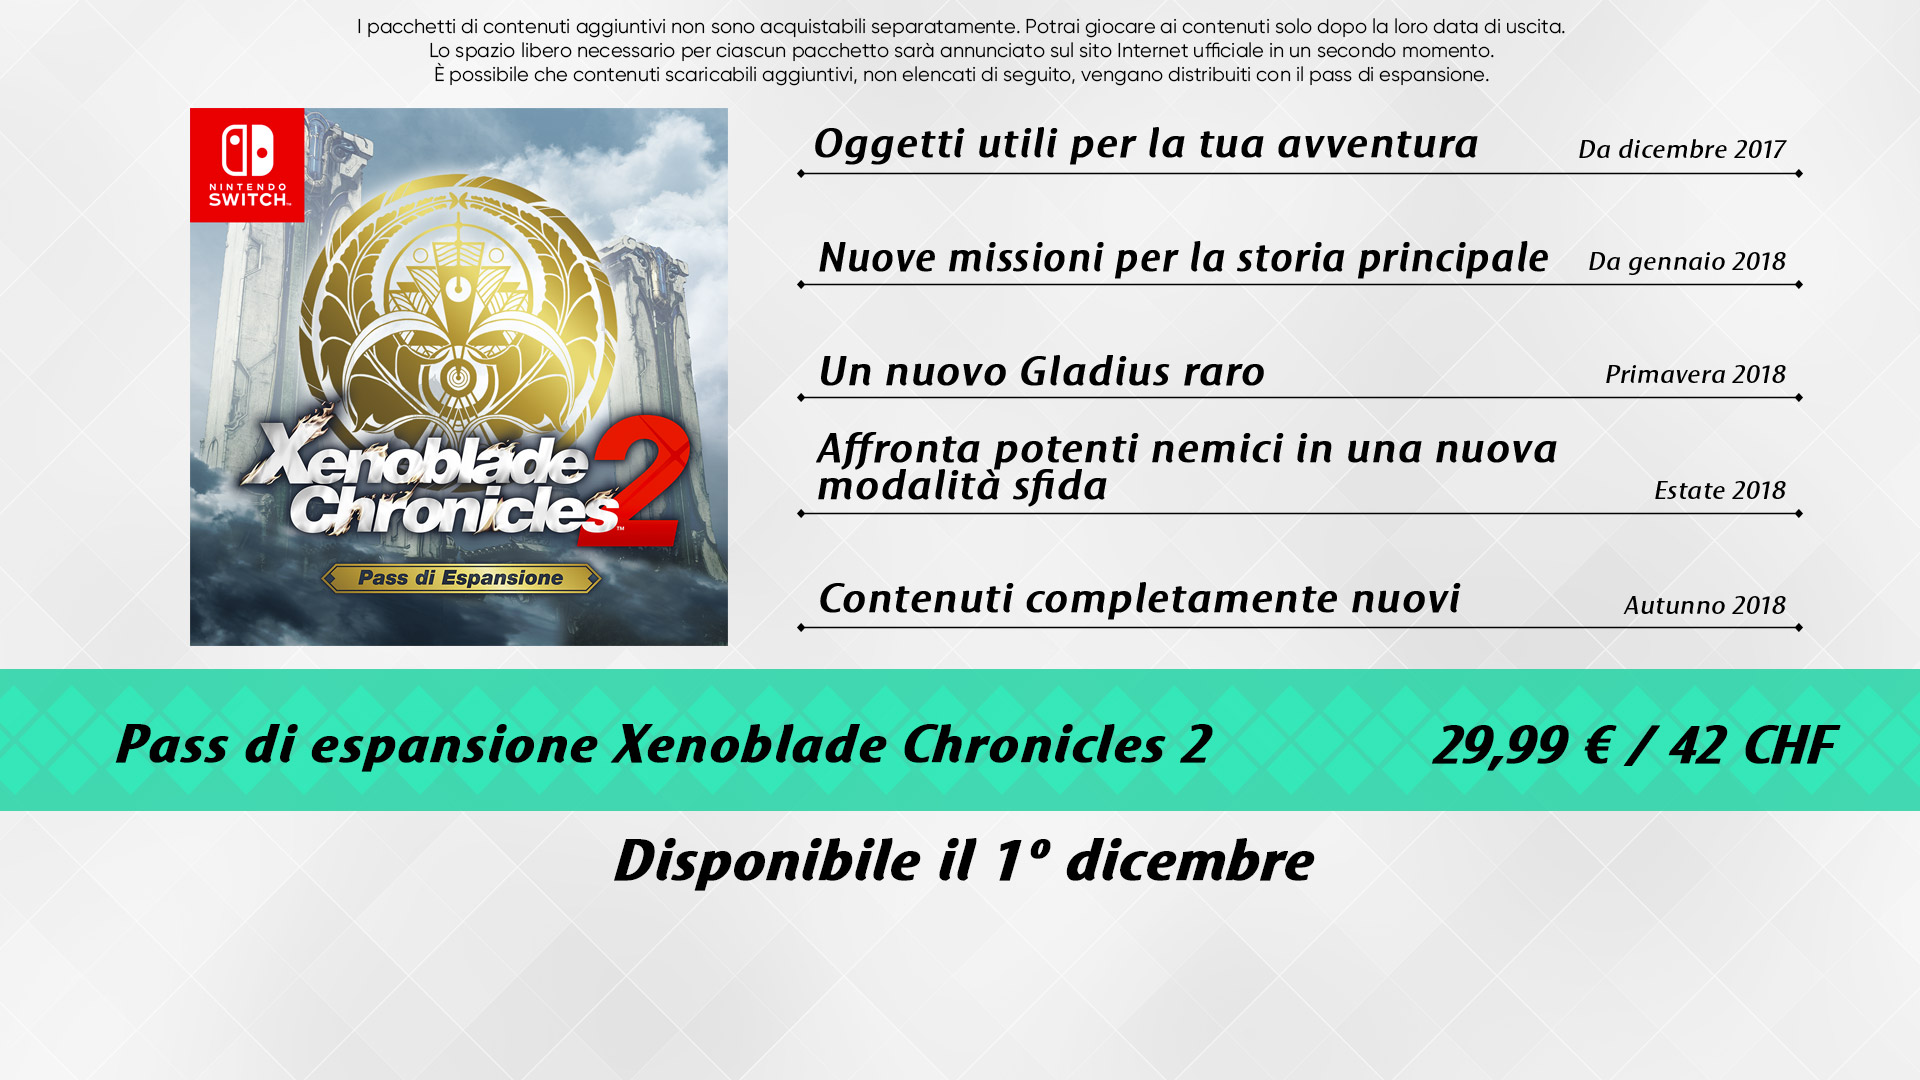 Nintendo Direct di Xenoblade Chronicles 2, tutte le informazioni